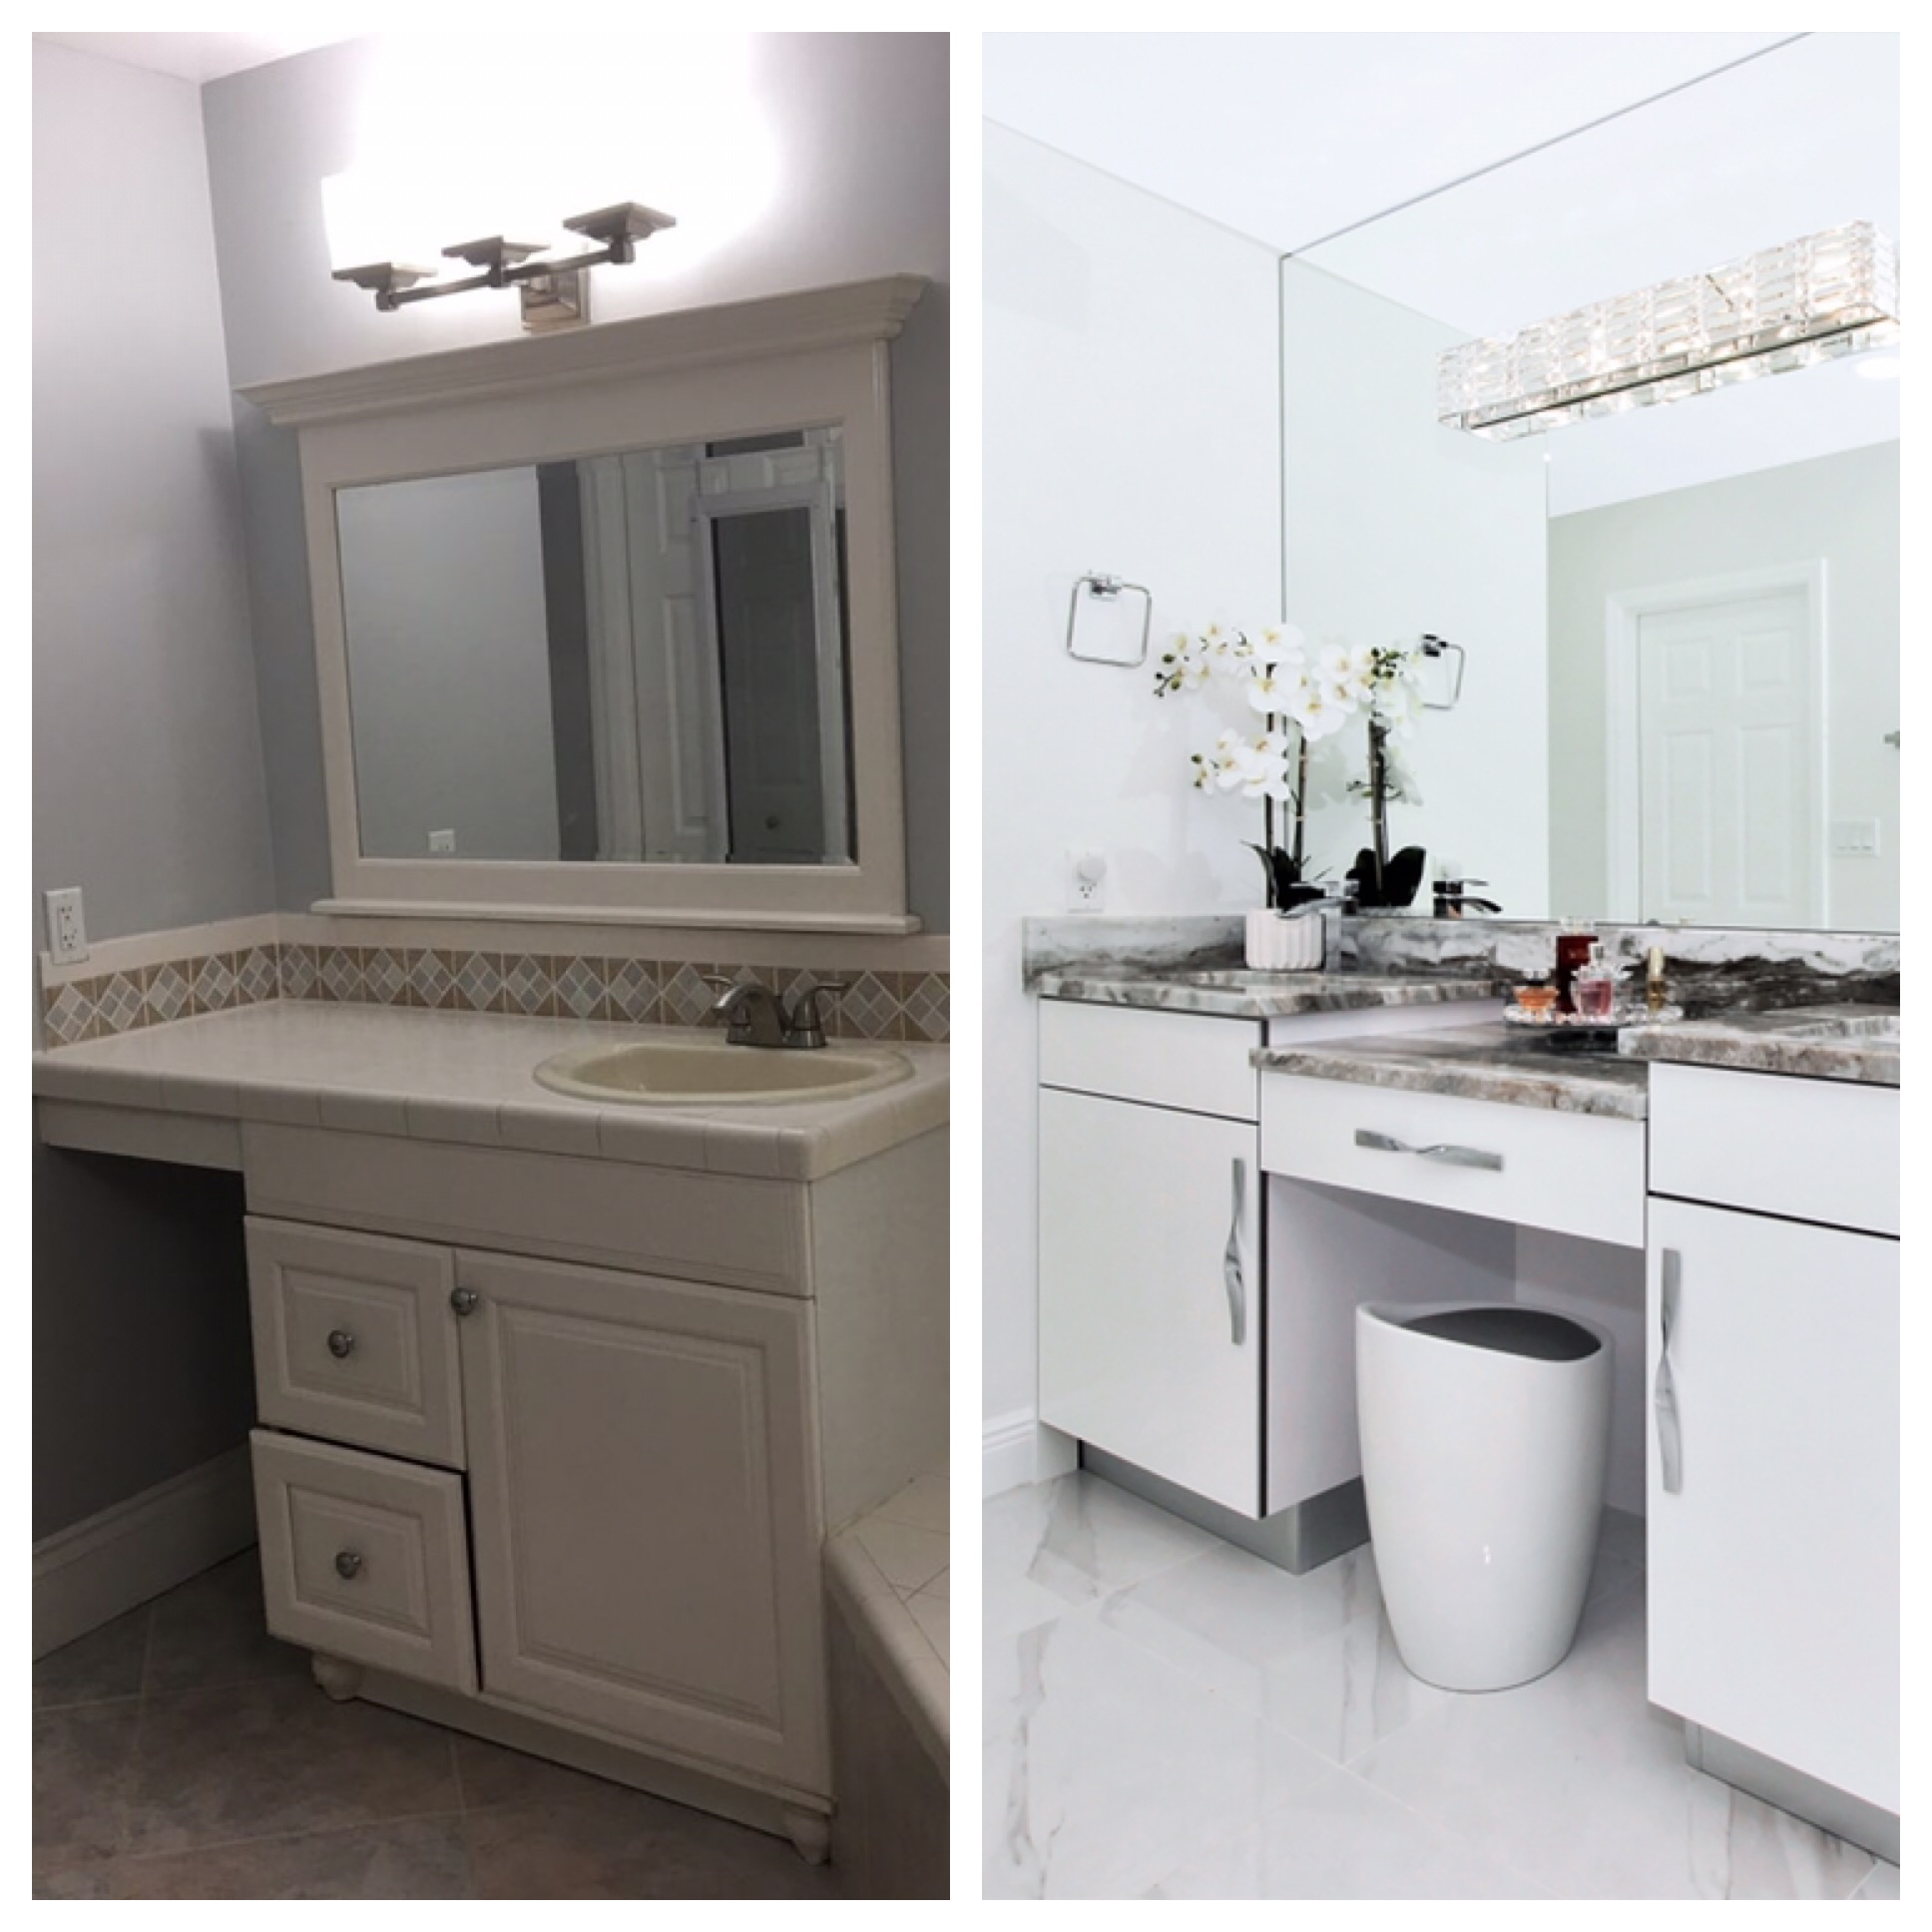 sheffield_construction_snider_project_before_after06.JPG